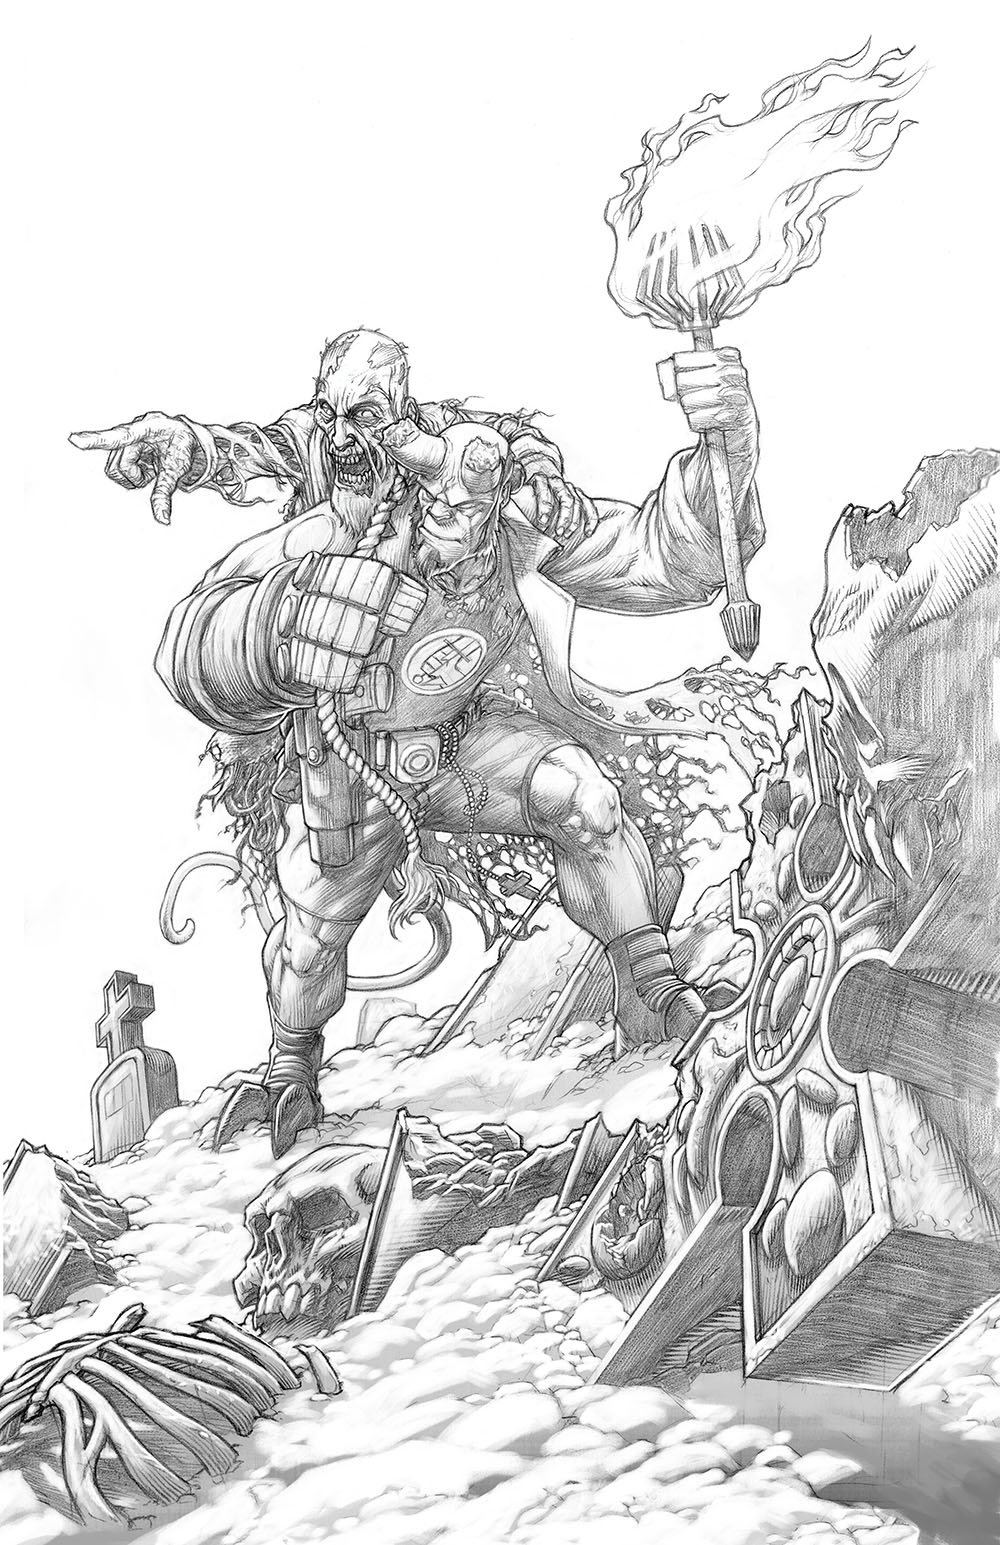 Hellboy commision/cover pencil sample.